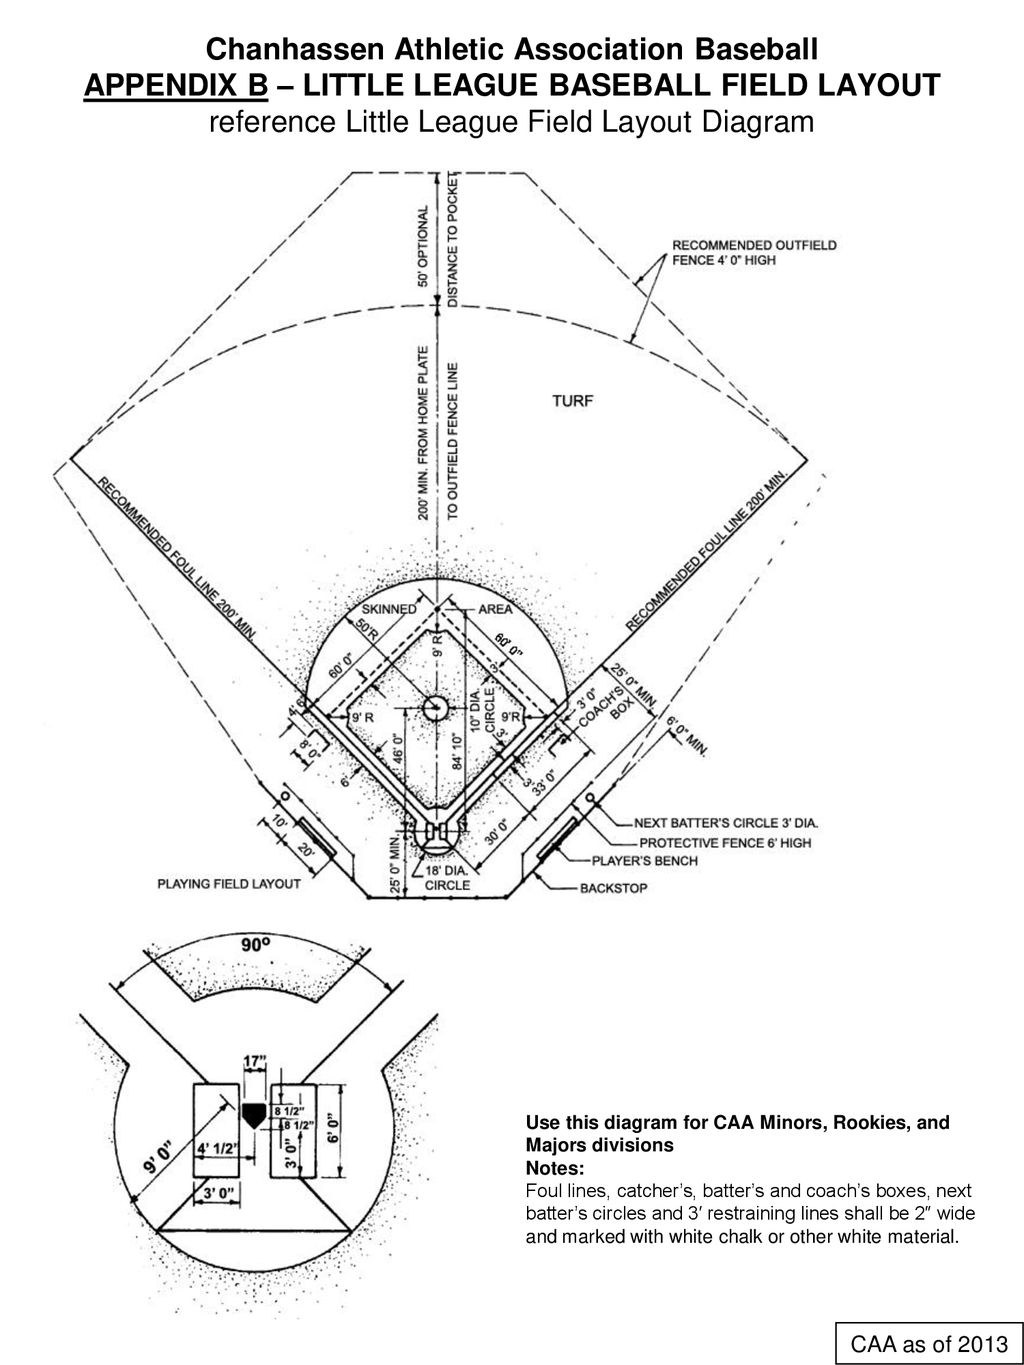 Baseball Field Diagram Chanhassen Athletic Association Fastpitch Softball Appendix A